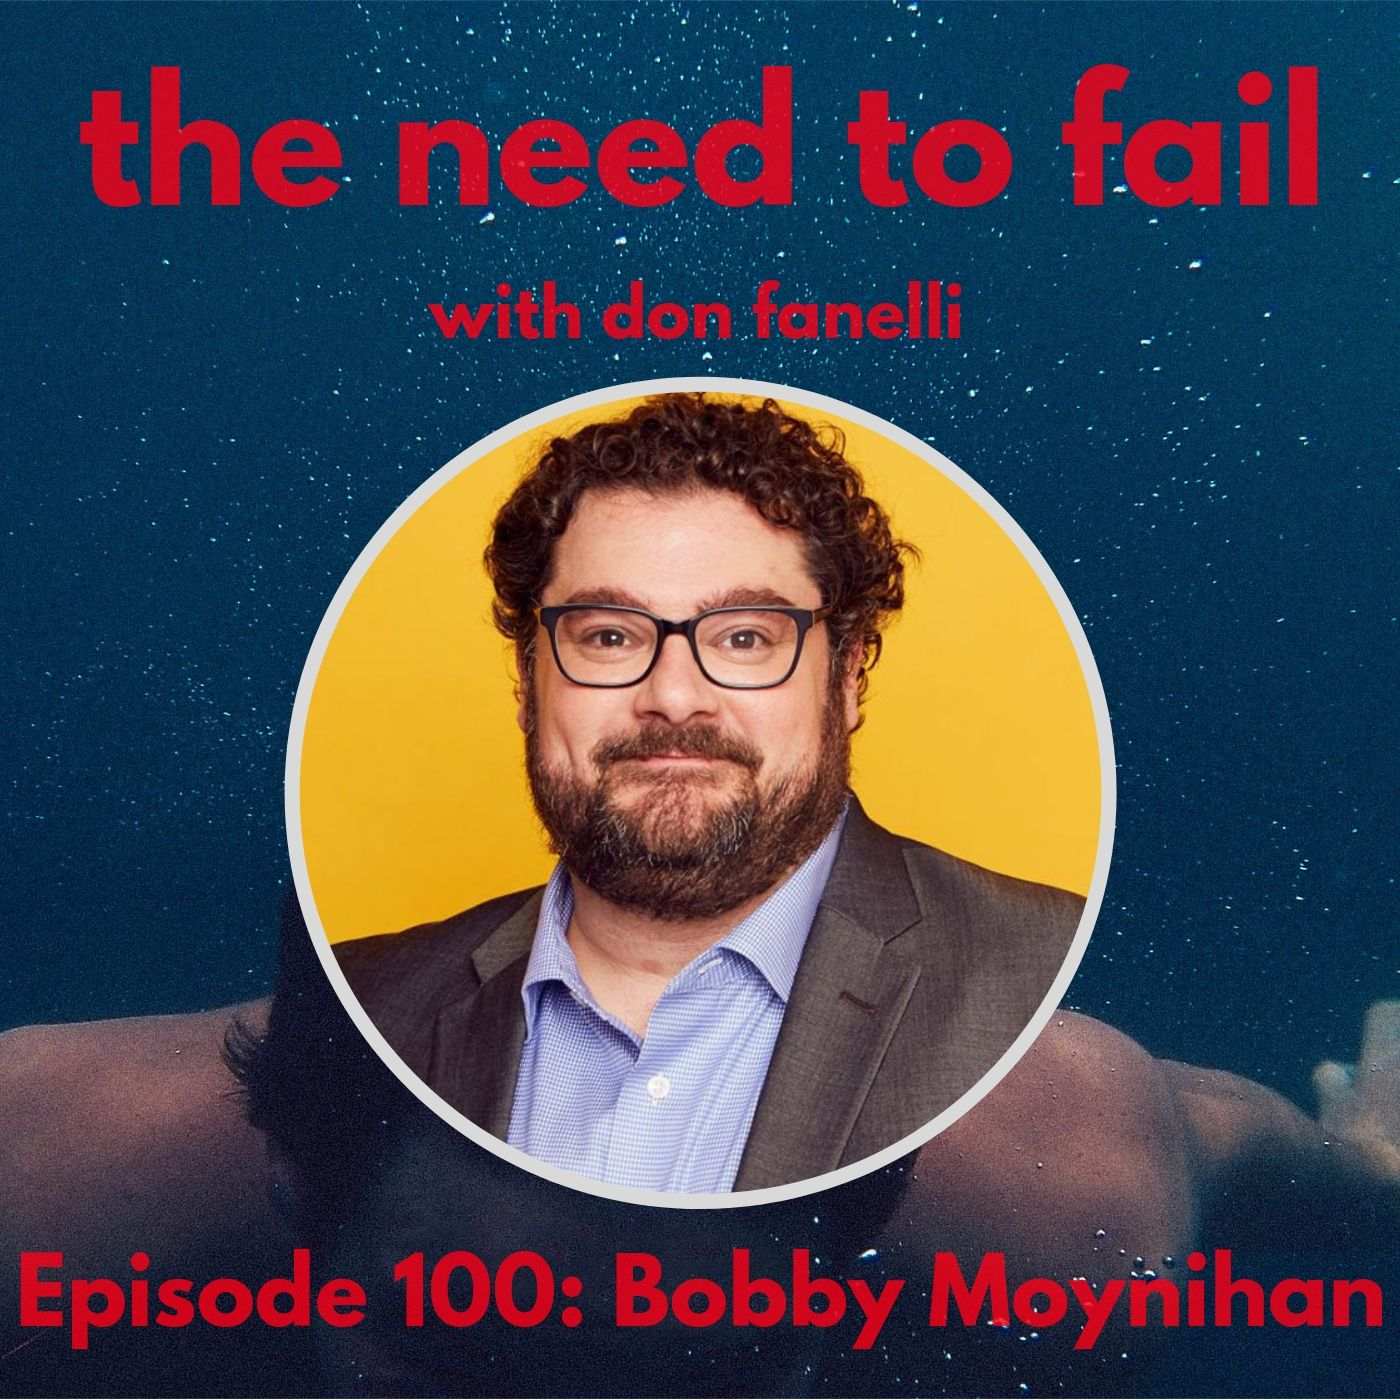 Episode 100: Bobby Moynihan (Live at The Lyric Hyperion)